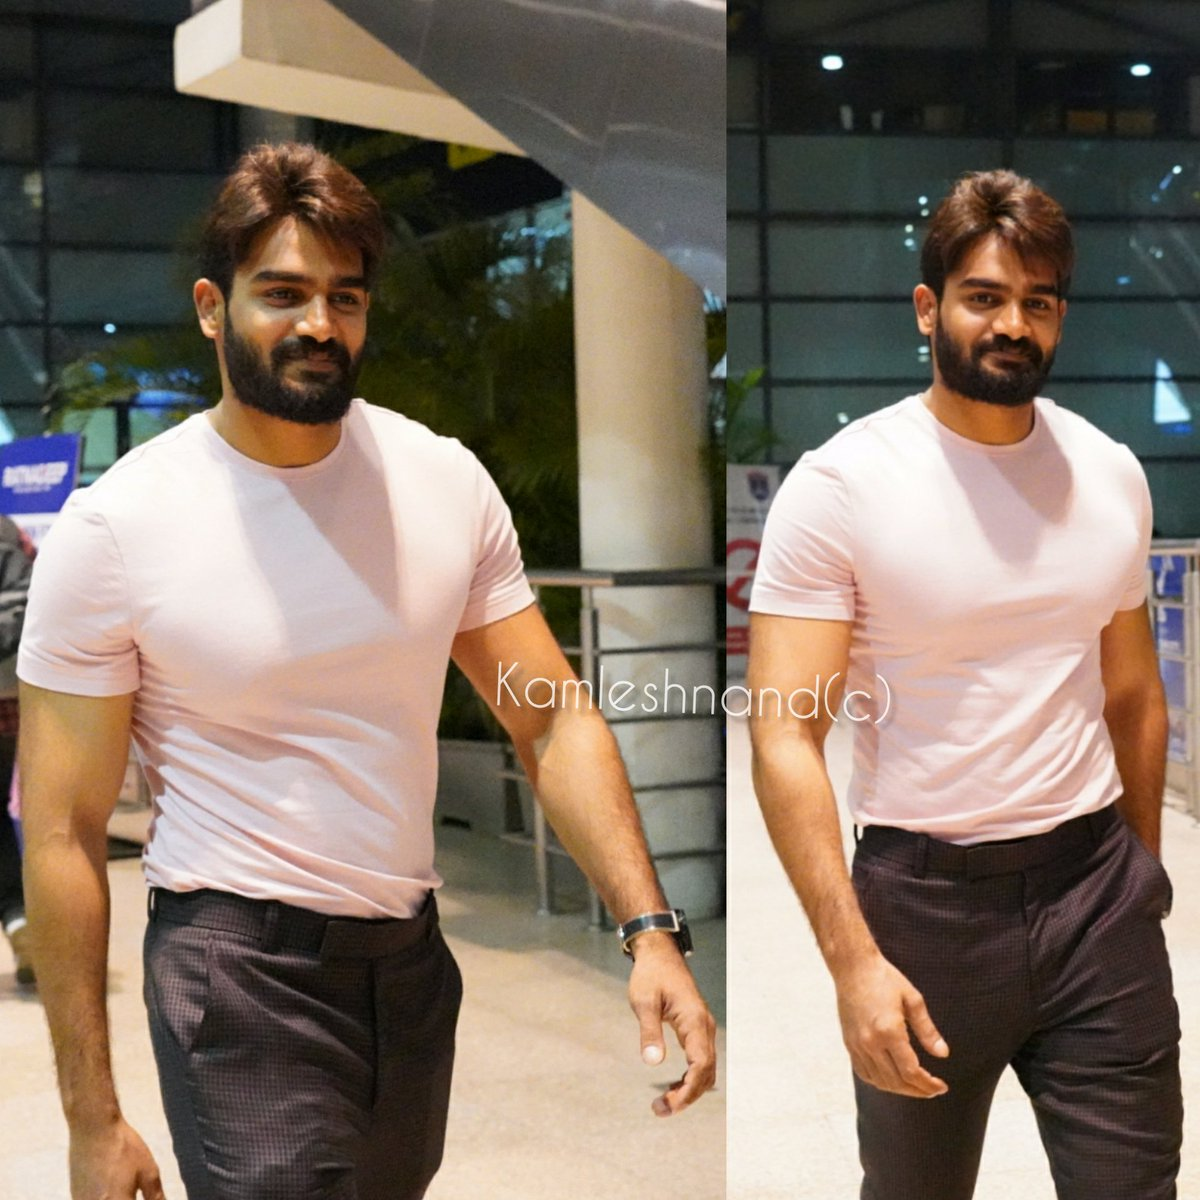 Tollywood star @ActorKartikeya papped at rgia back to hyd post wrapping schedule for #Valimai #style #actor @kamlesh_nand #kartikeya  #southcelebs #ThalaAjithfans #ThalaAjith_FC  #ThalaAjithpic.twitter.com/S17gishZoW